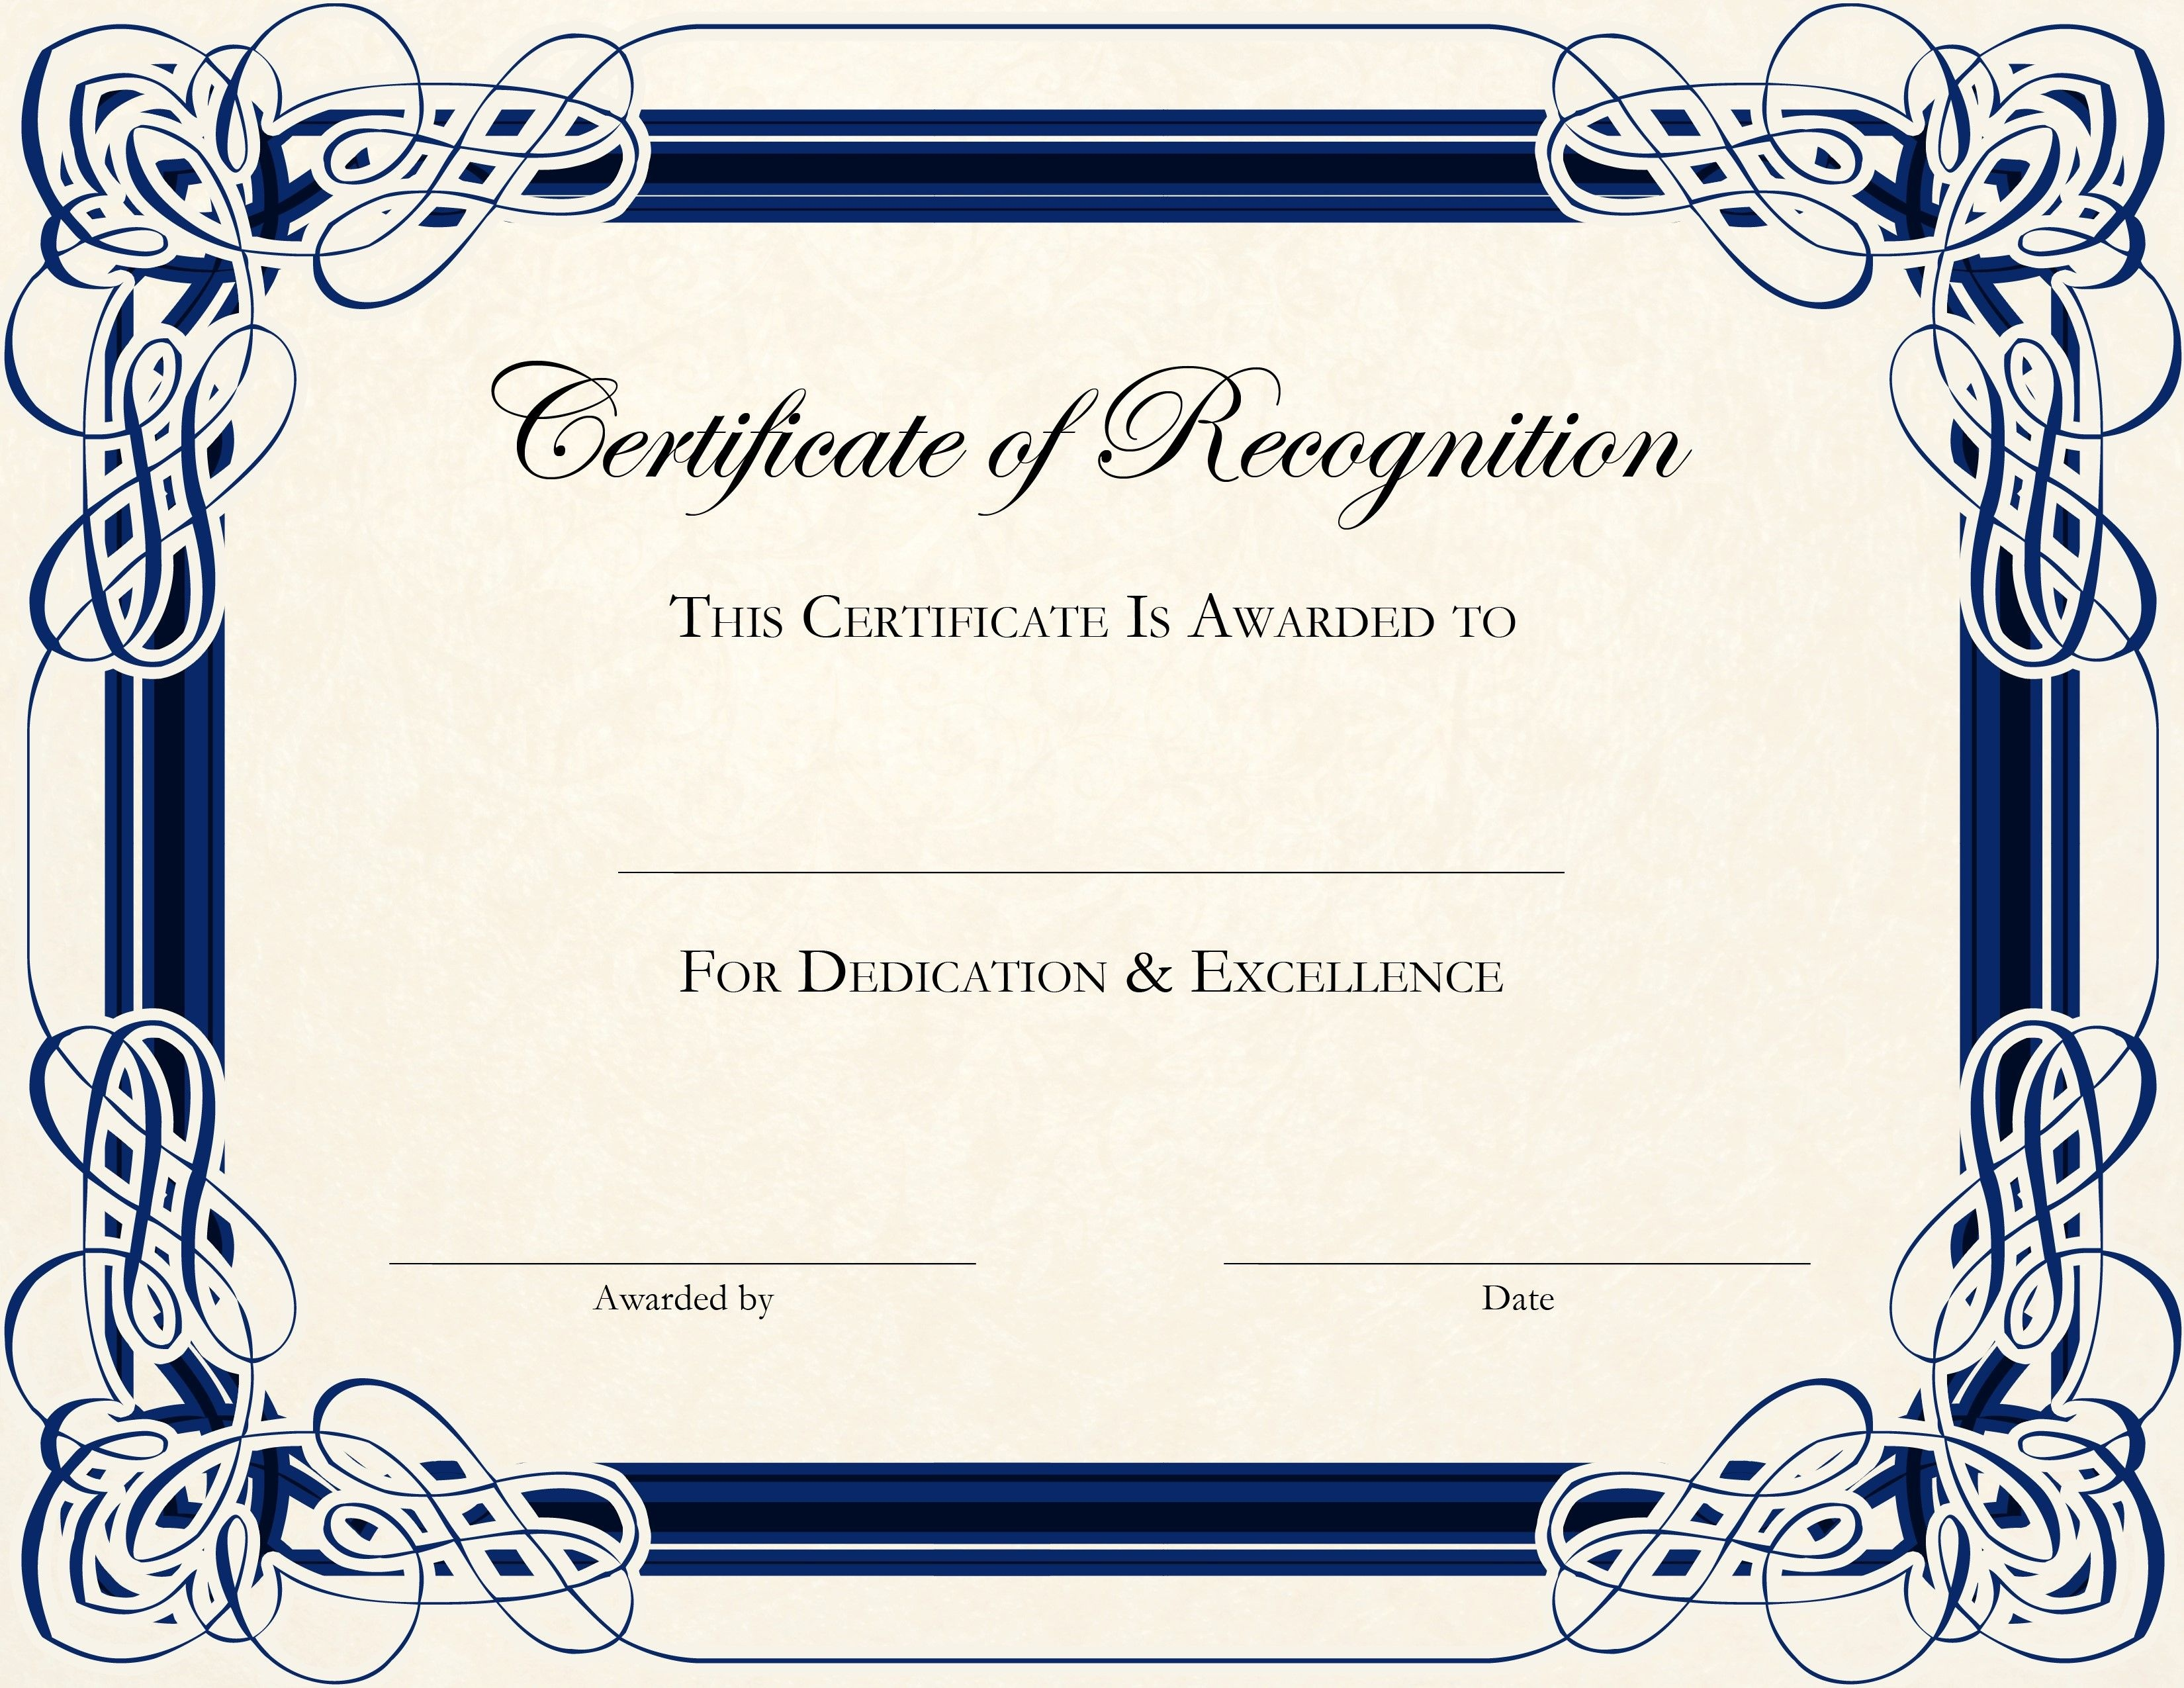 Free Printable Certificate Templates For Teachers   Besttemplate123 - Free Printable Certificates For Teachers